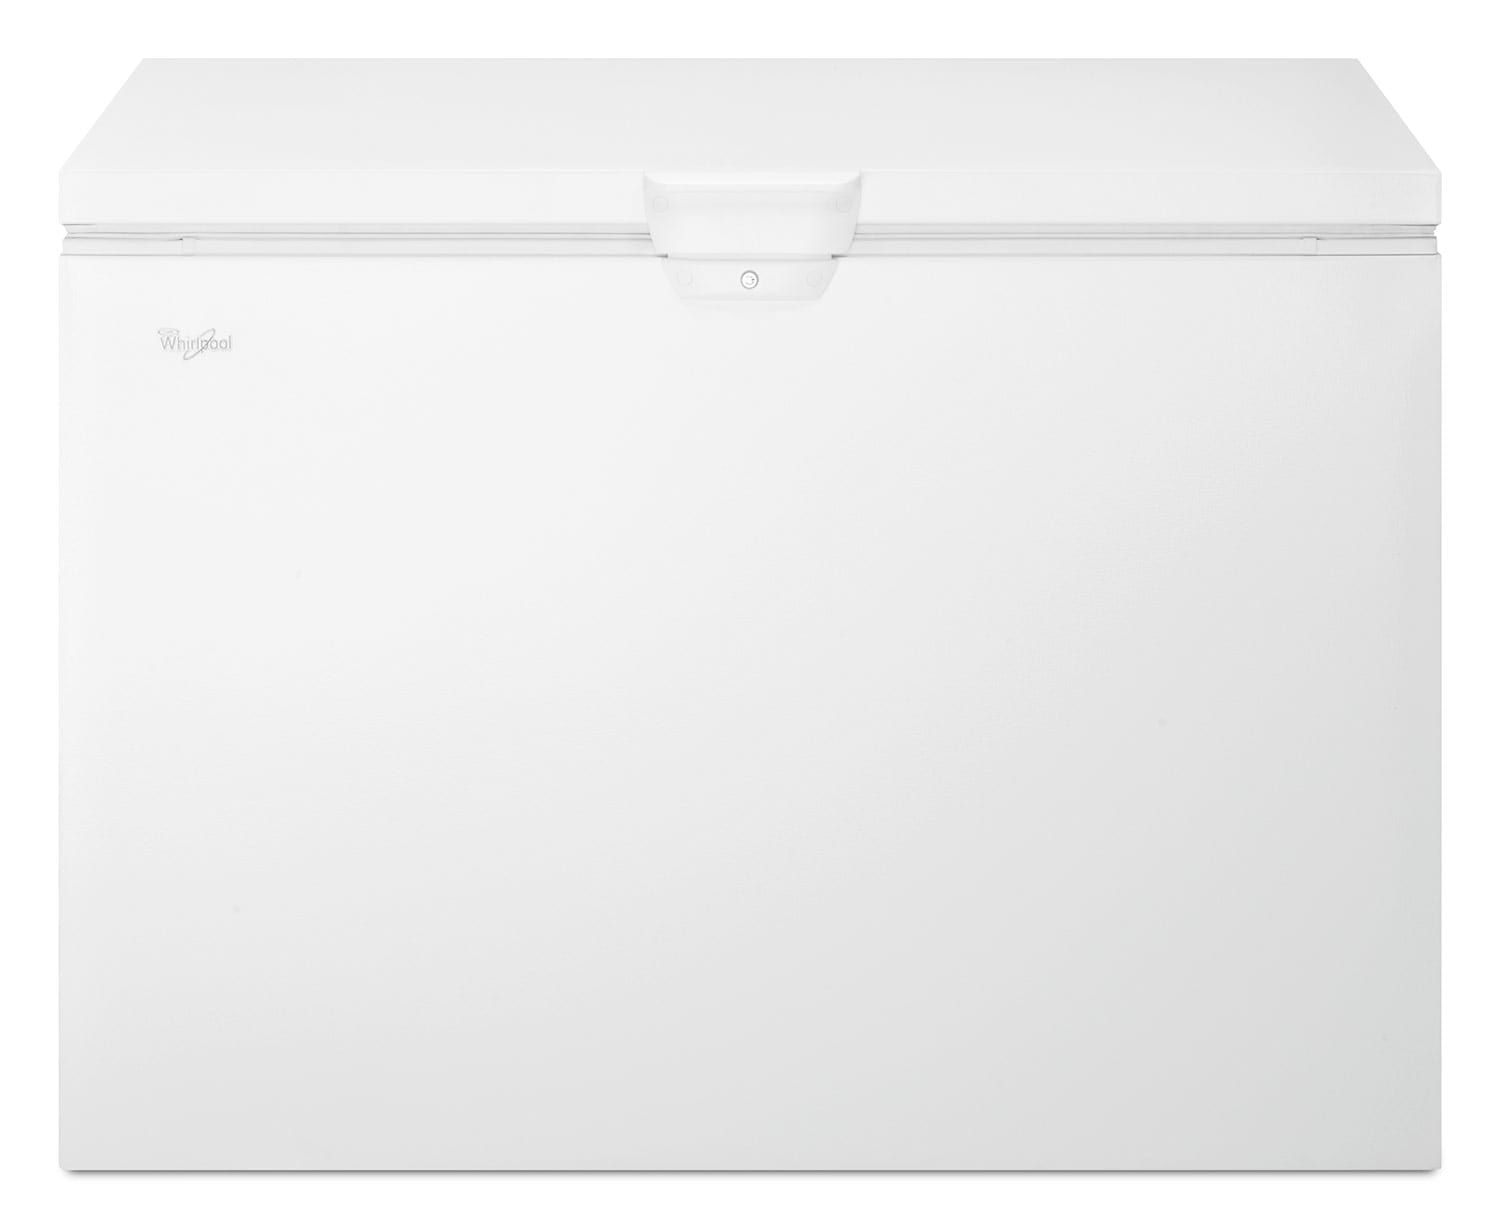 Whirlpool White Chest Freezer (14.8 Cu. Ft.) - WZC3115DW